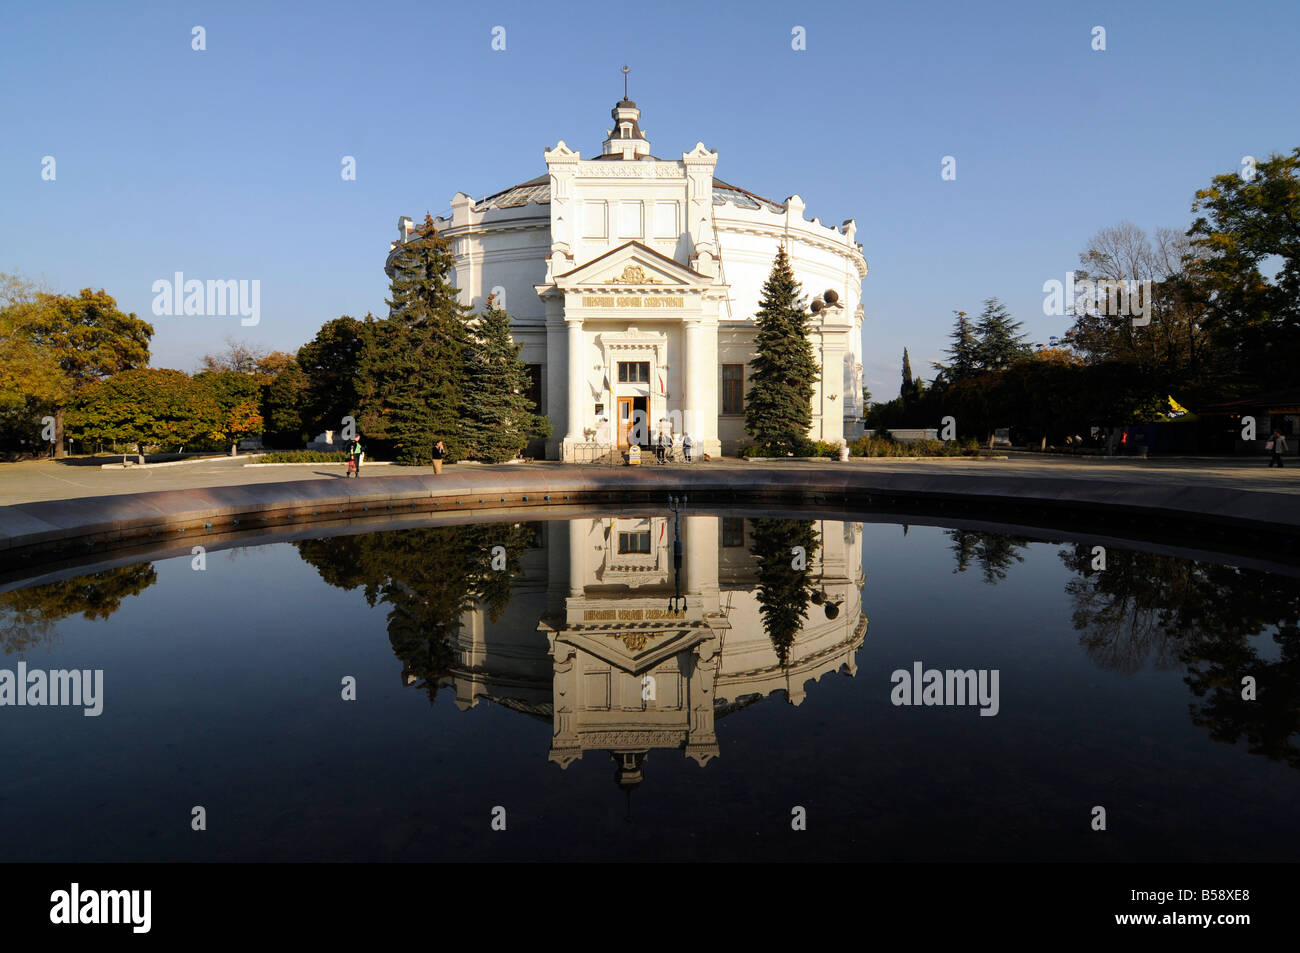 The 'panorama' building in Sebastopol, Ukraine. This building host a large museum dedicated to the XIX century - Stock Image